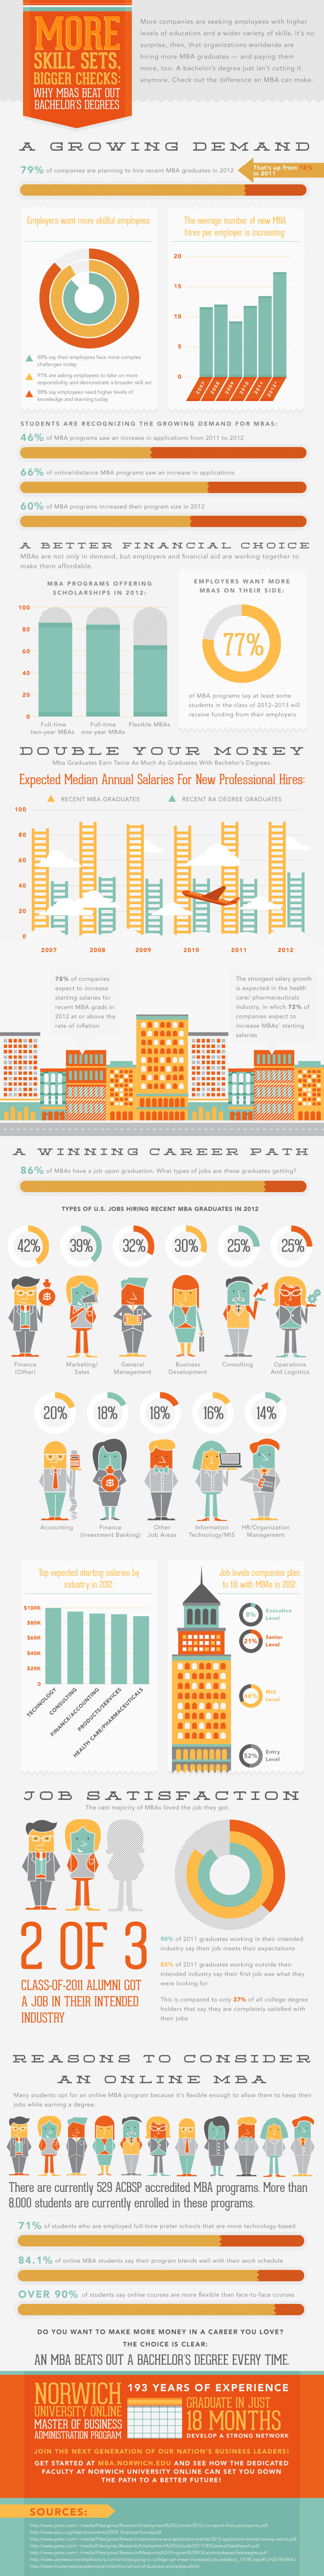 A Growing Demand: Why MBA's Beat Out Bachelor's Degrees Infographic